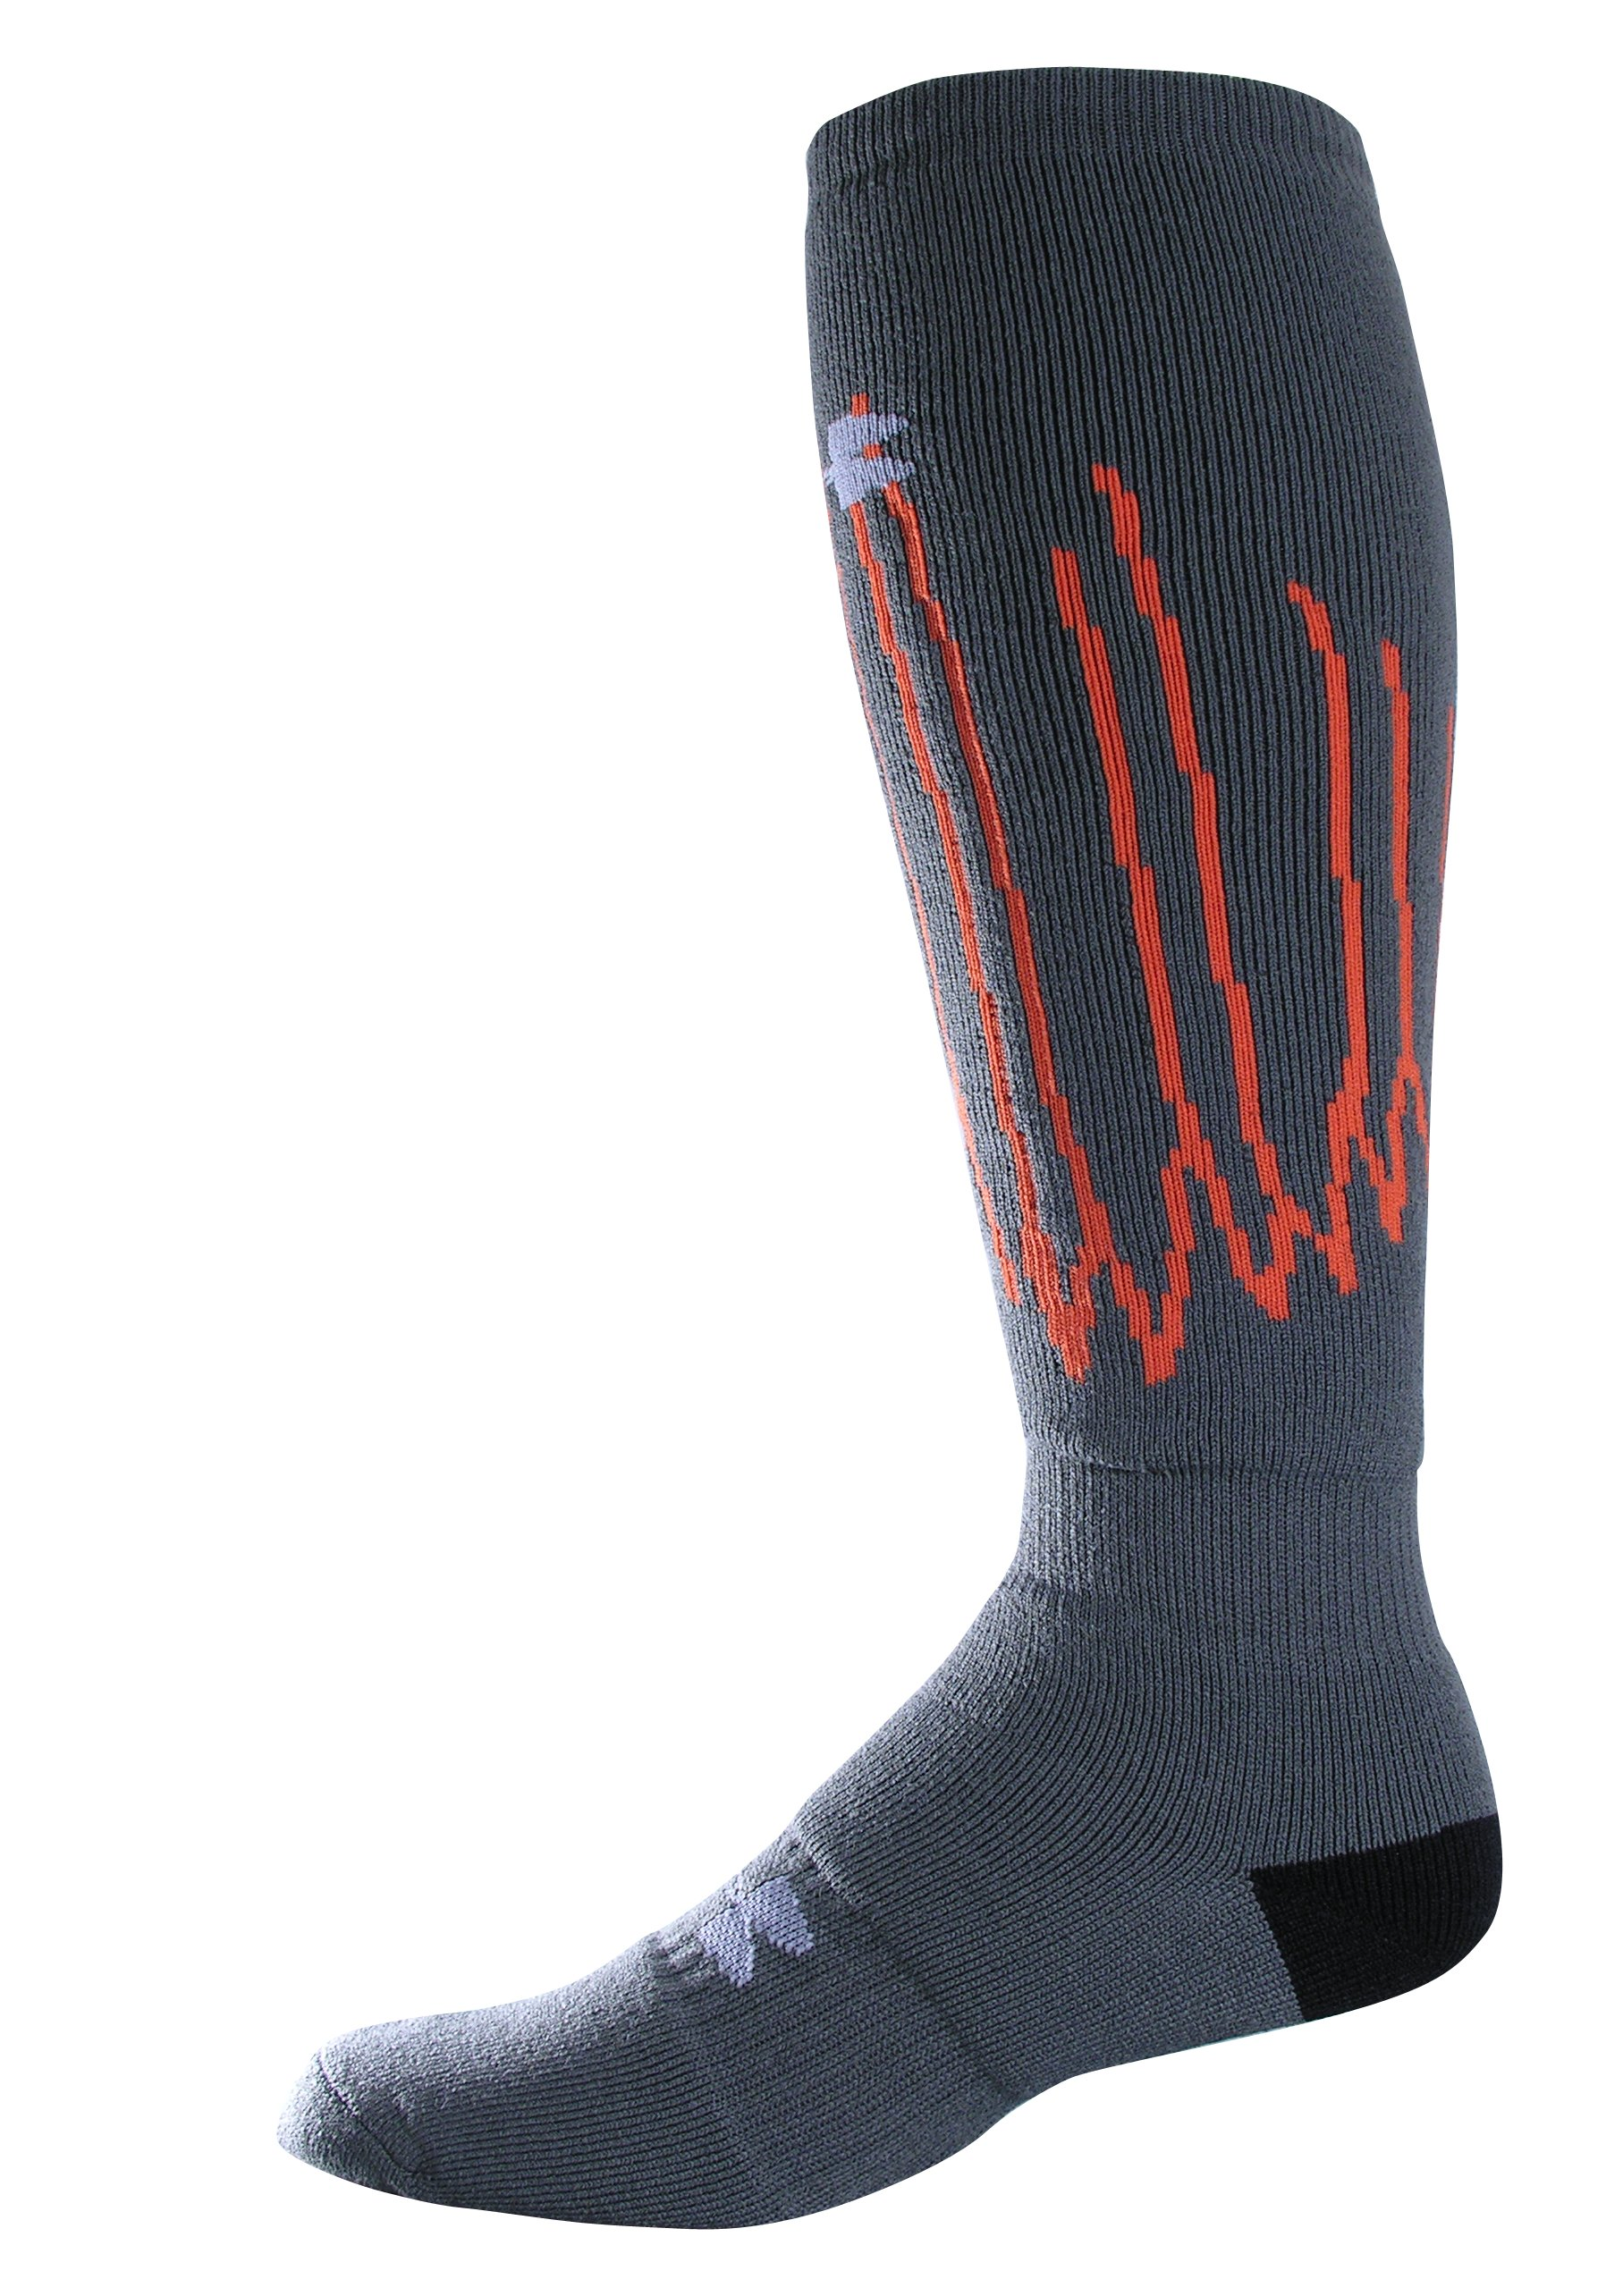 UA Pulse Snow/Ski Socks, Gray